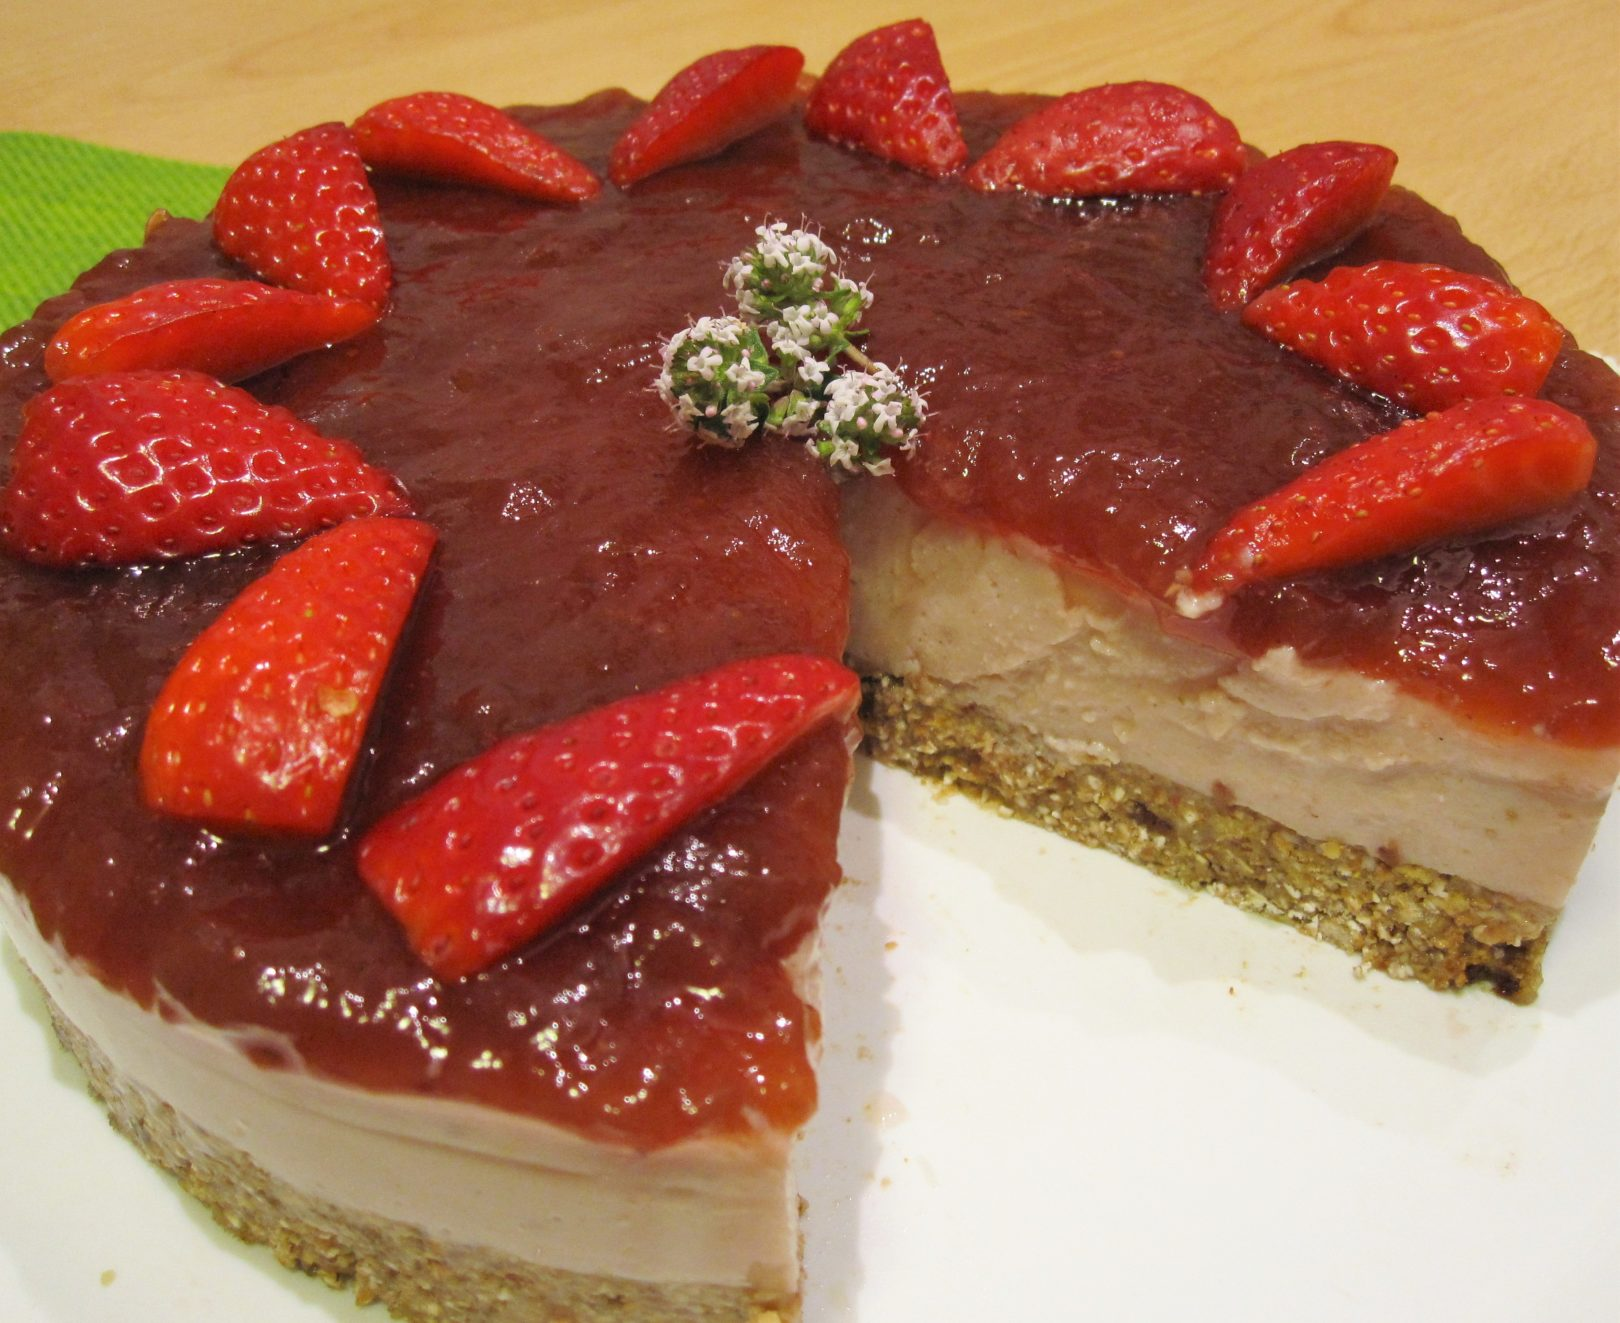 Vegan cheesecake alle fragole